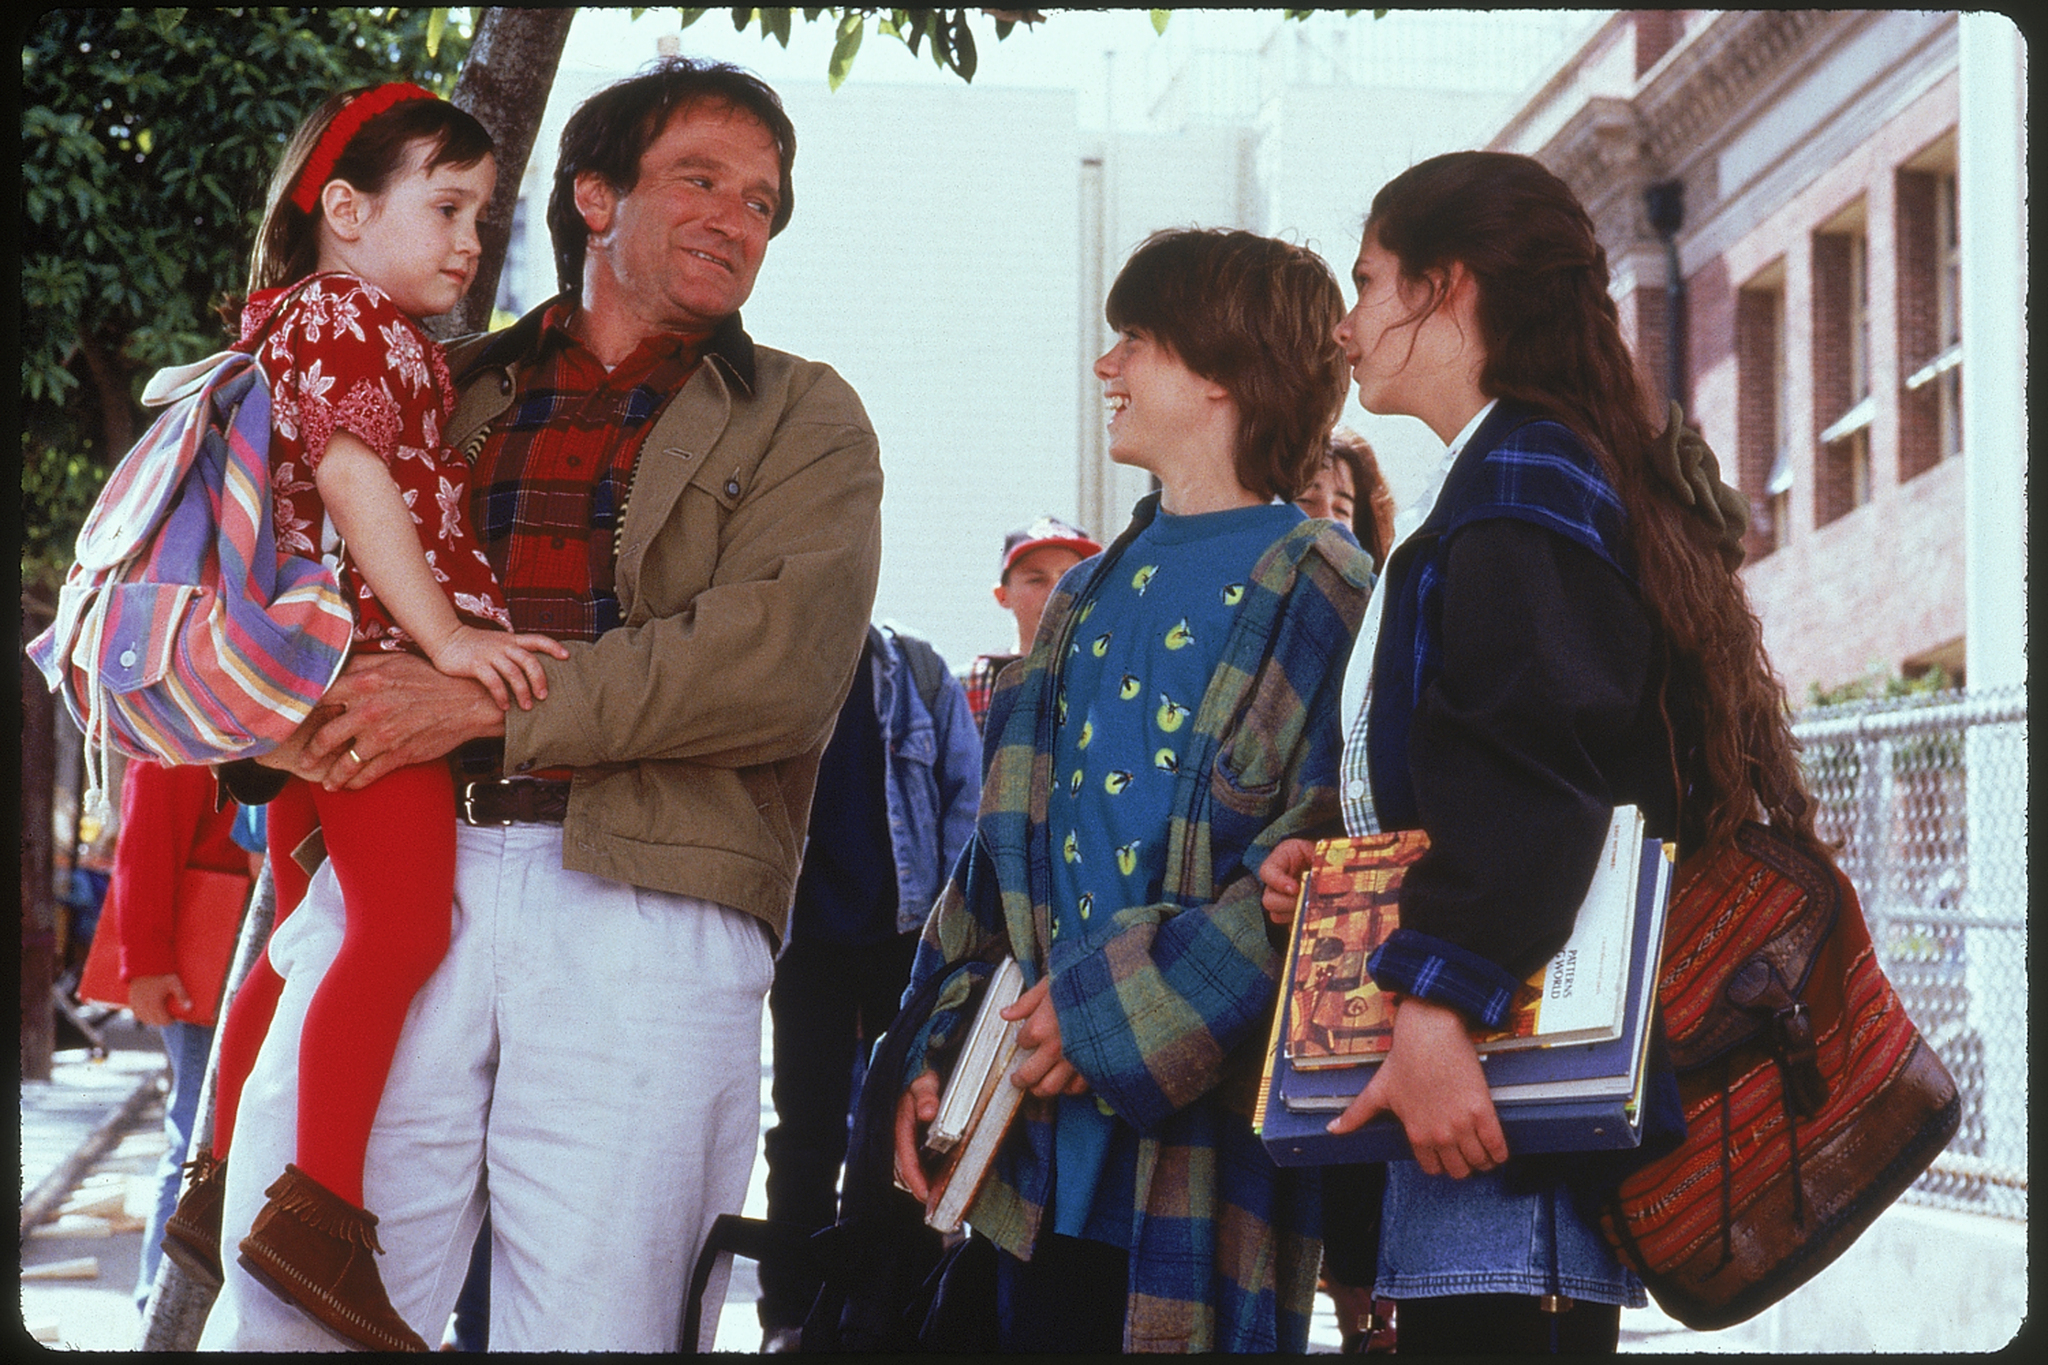 Robin Williams, Lisa Jakub, Matthew Lawrence, and Mara Wilson in Mrs. Doubtfire (1993)